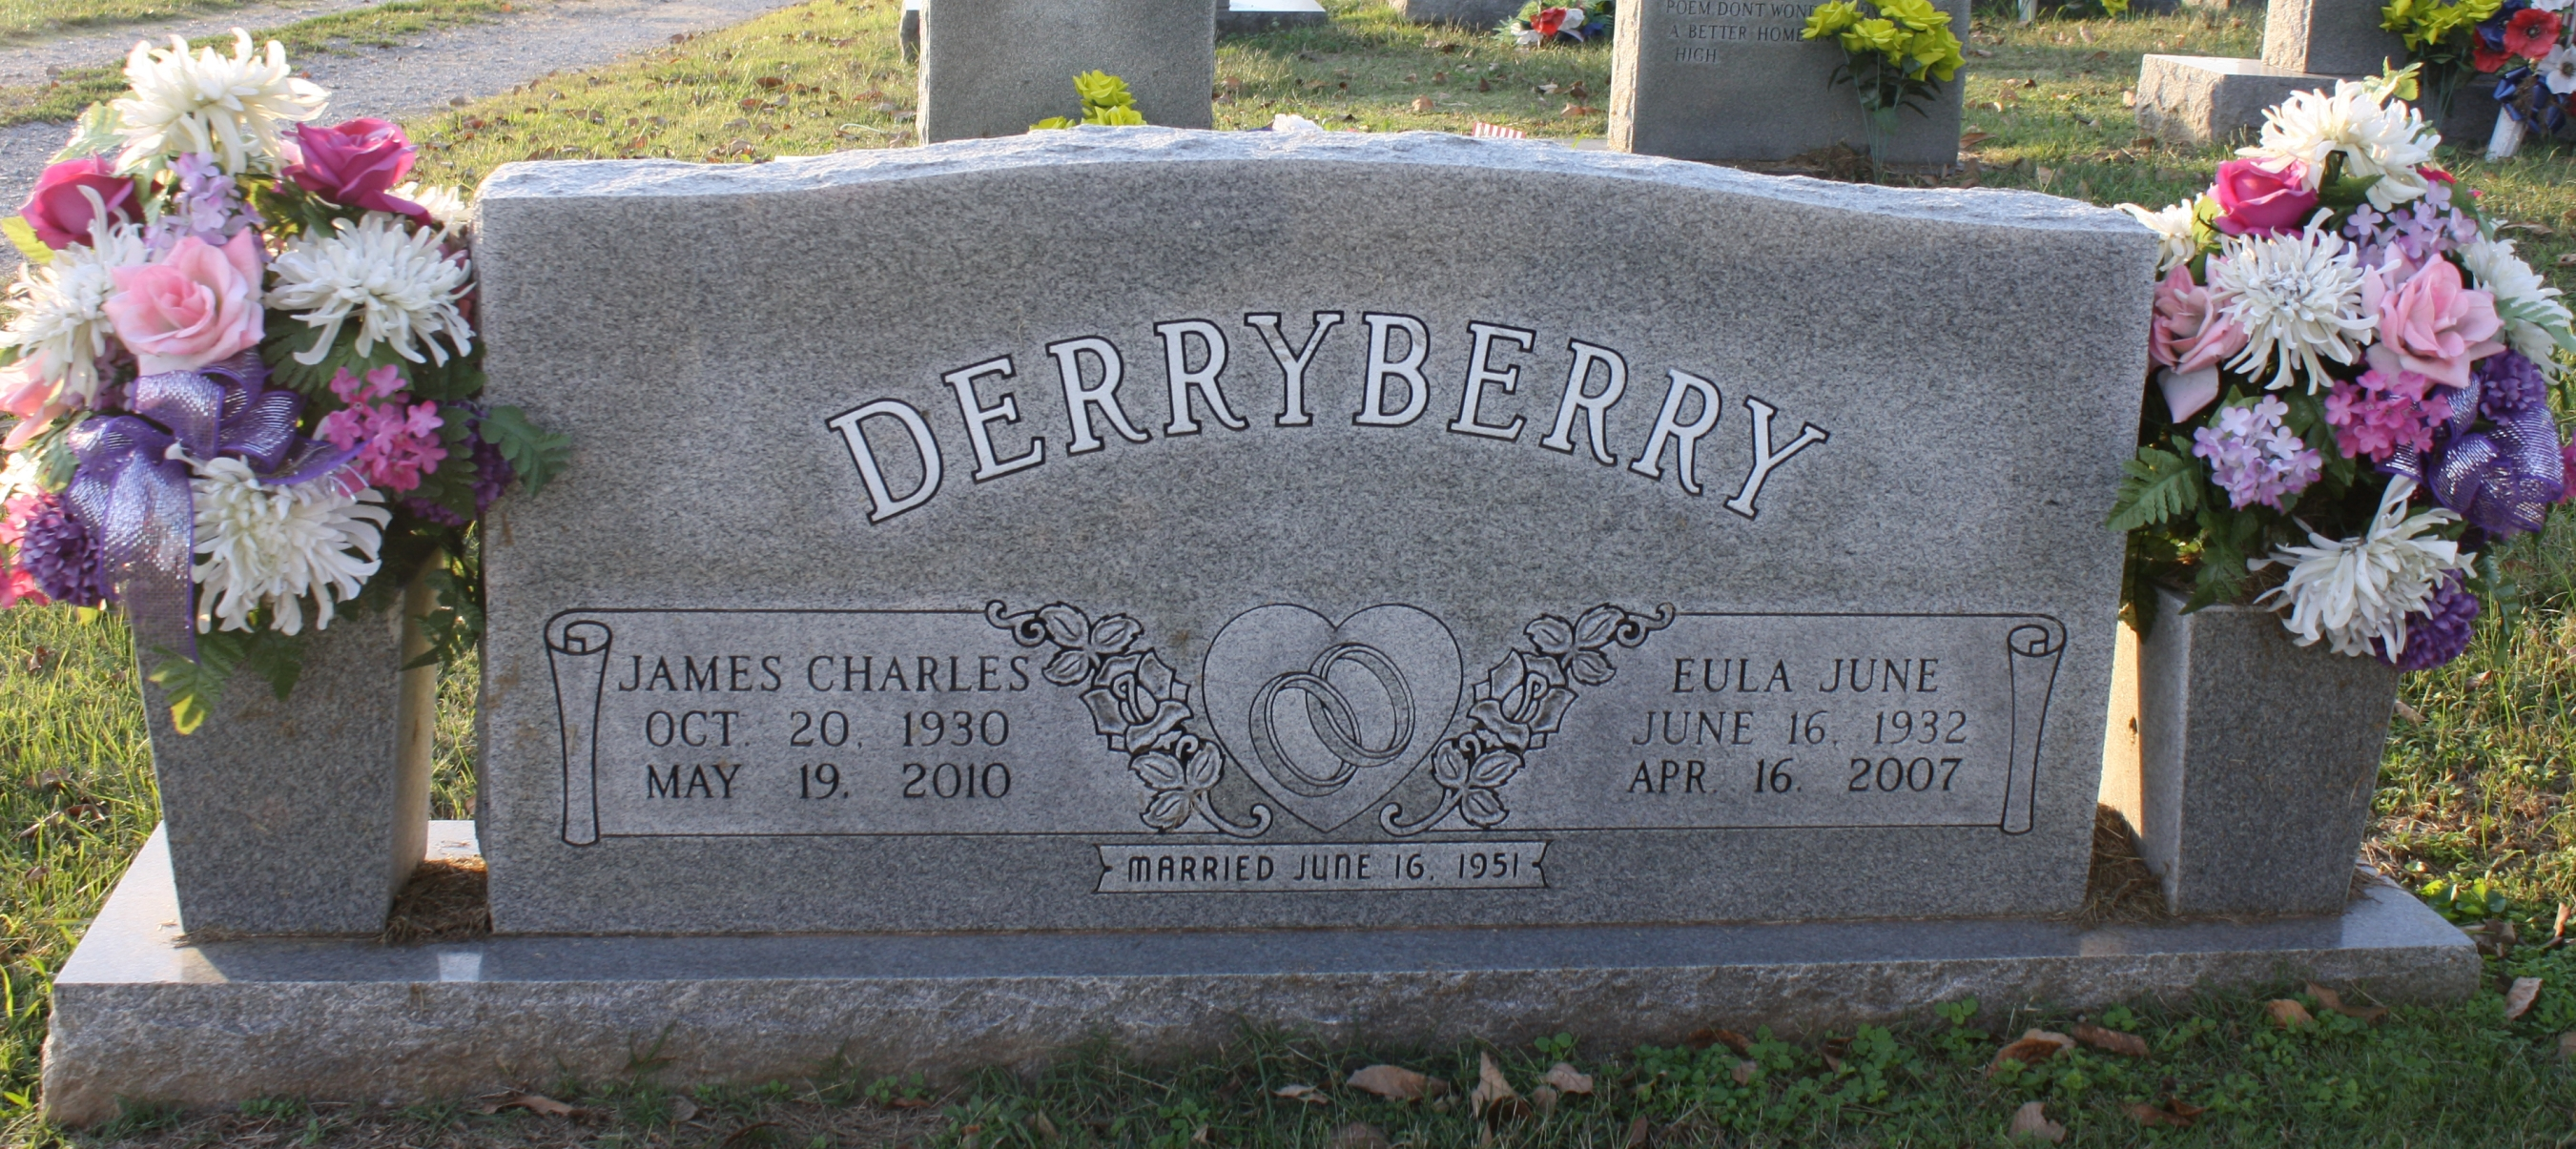 Charles Edward Derryberry